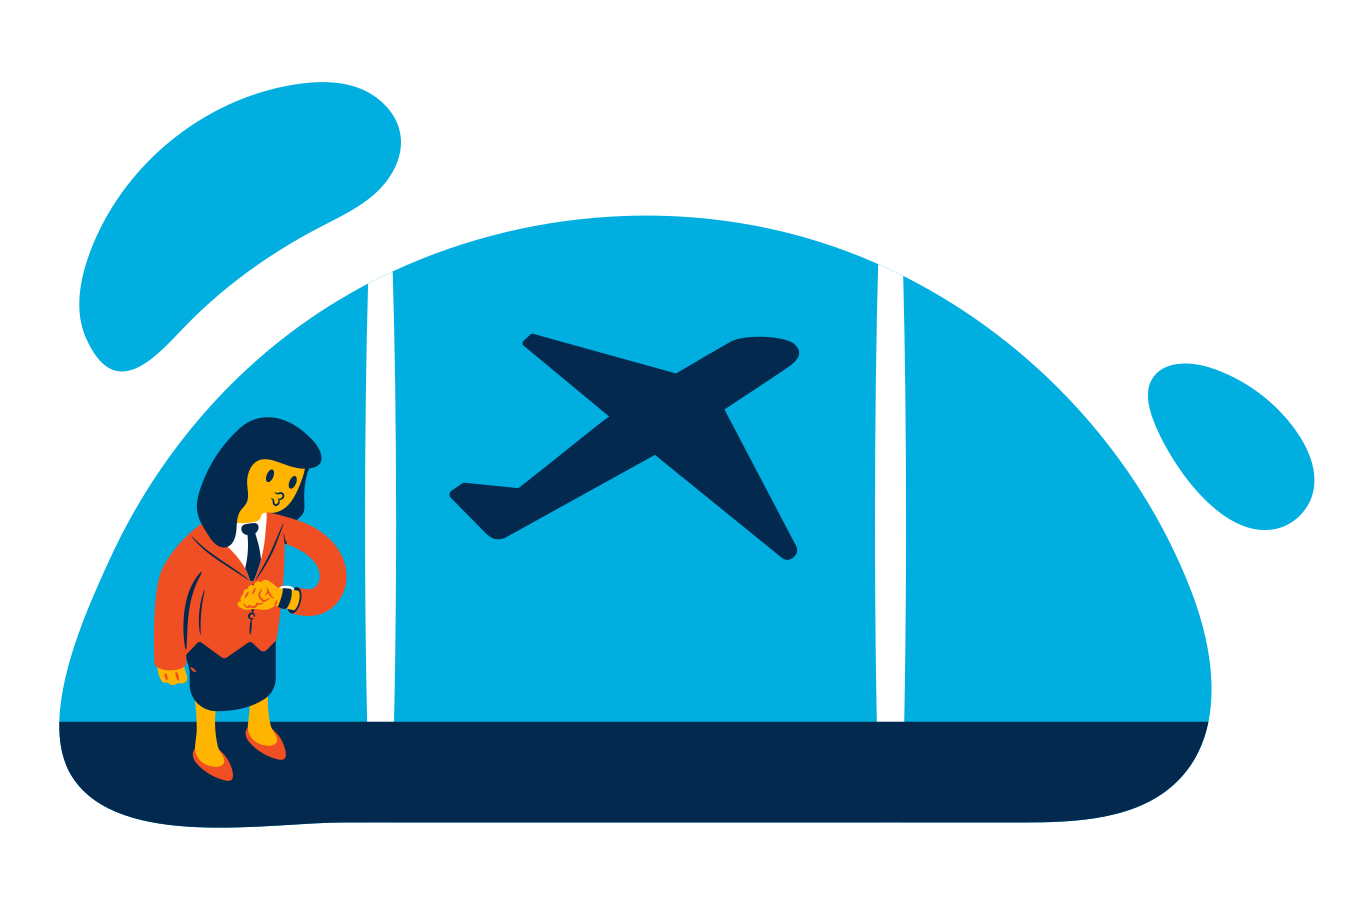 Waiting for a flight Clipart illustration in PNG, SVG